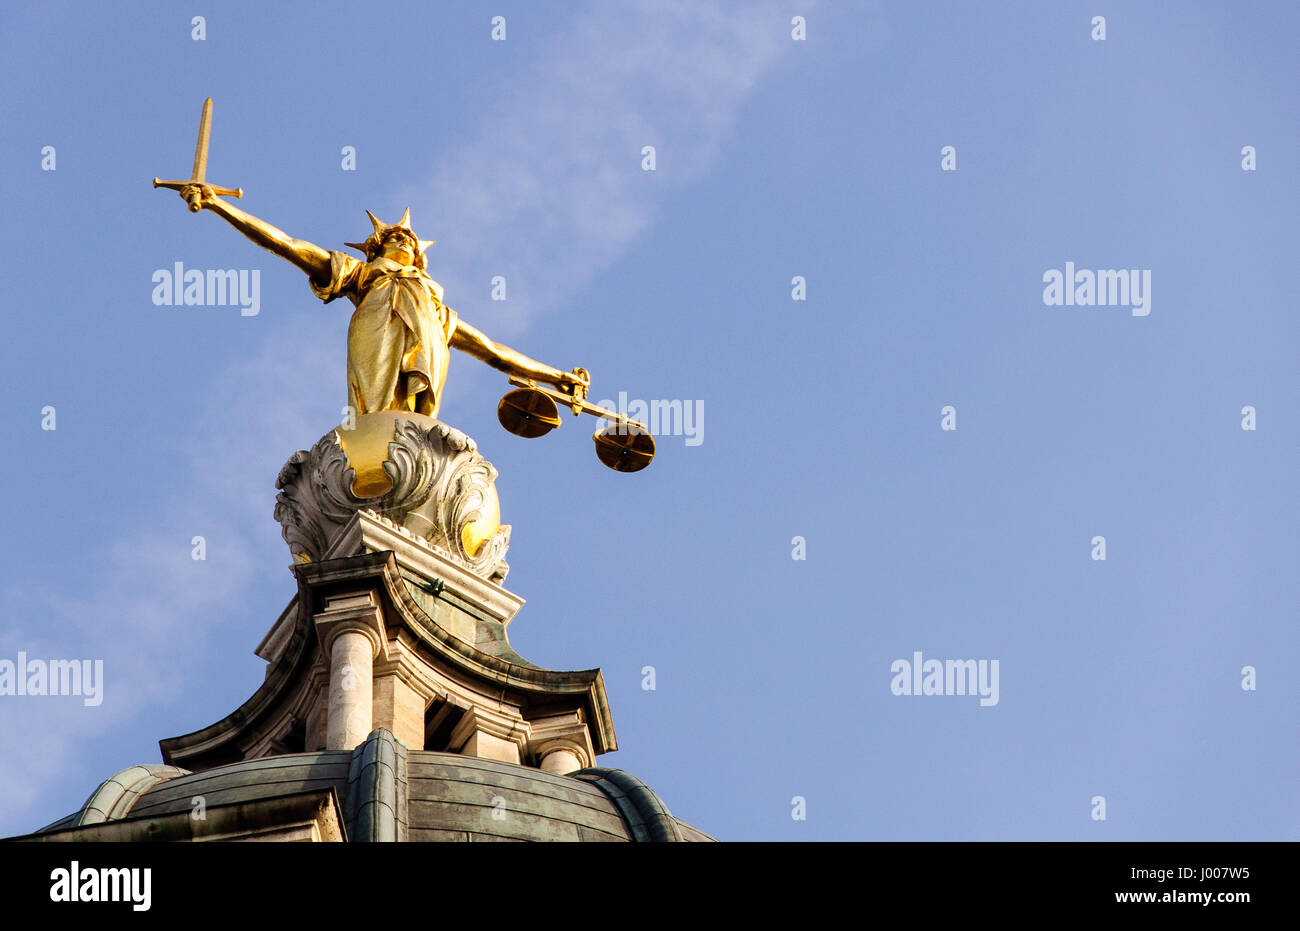 London, England - March 20, 2009: A statue of Justice stands over England's Central Criminal Court on London's Old Stock Photo